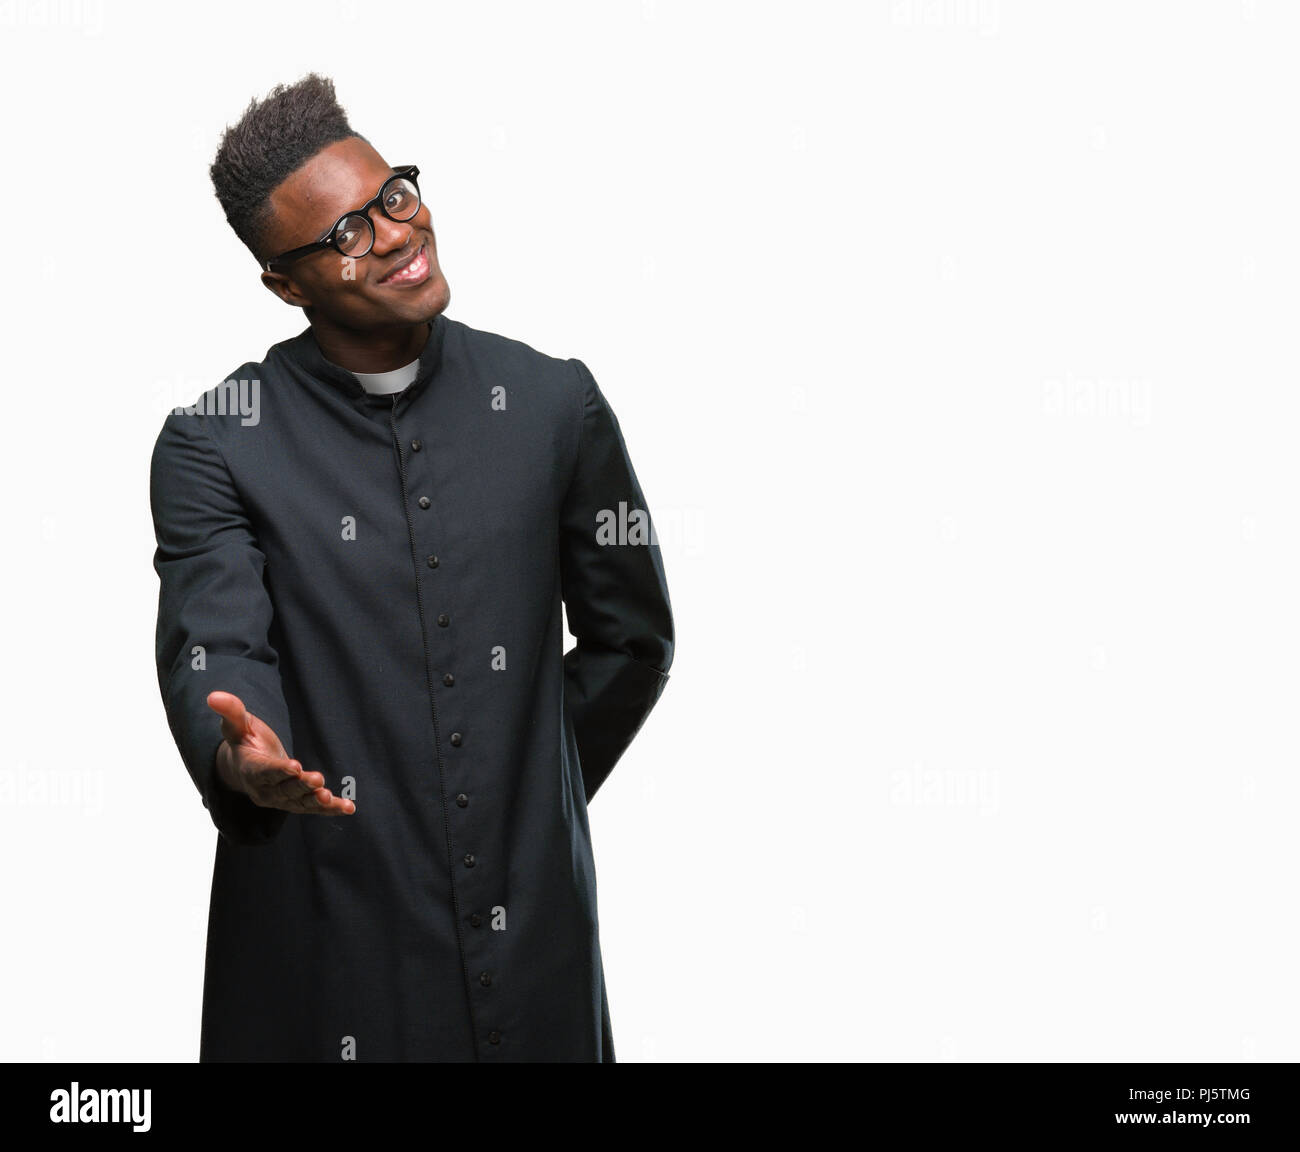 Young african american priest man over isolated background smiling friendly offering handshake as greeting and welcoming. Successful business. - Stock Image